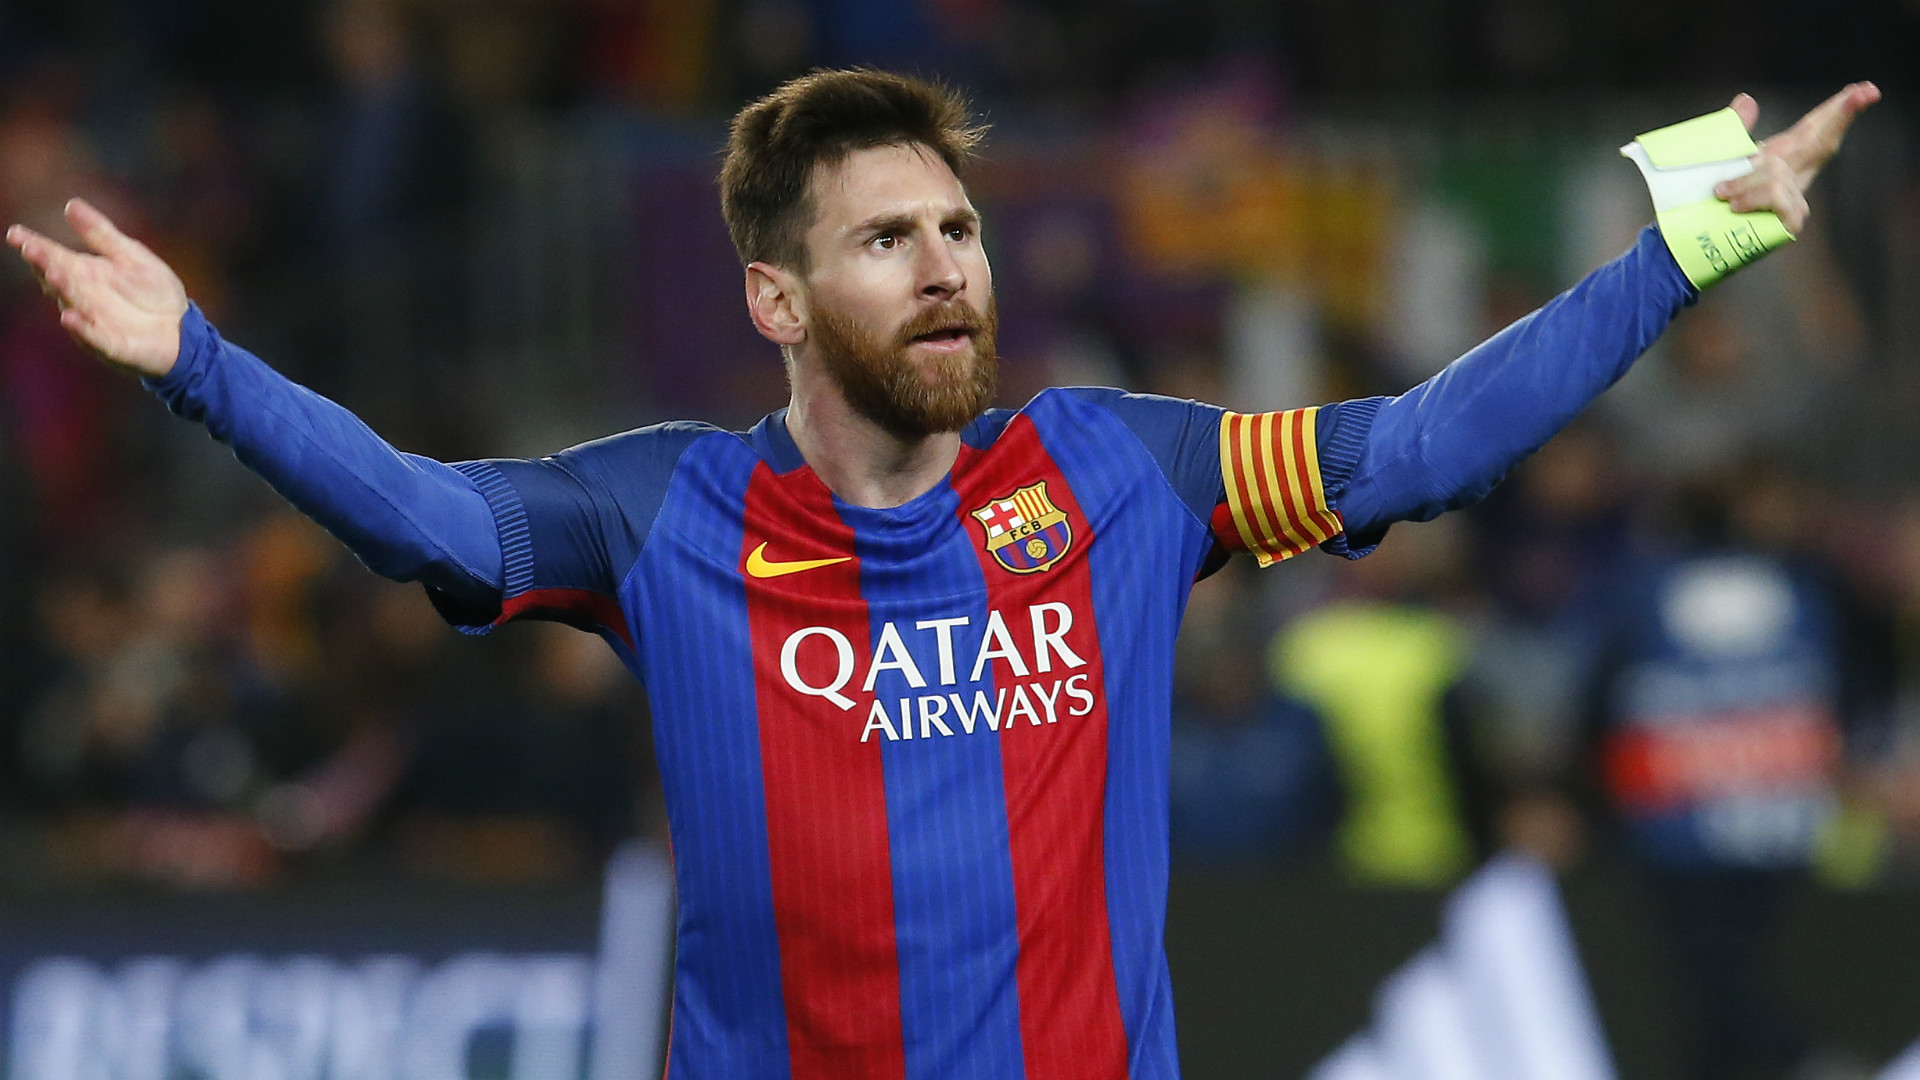 BREAKING! Lionel Messi has been named Barcelona's new Captain